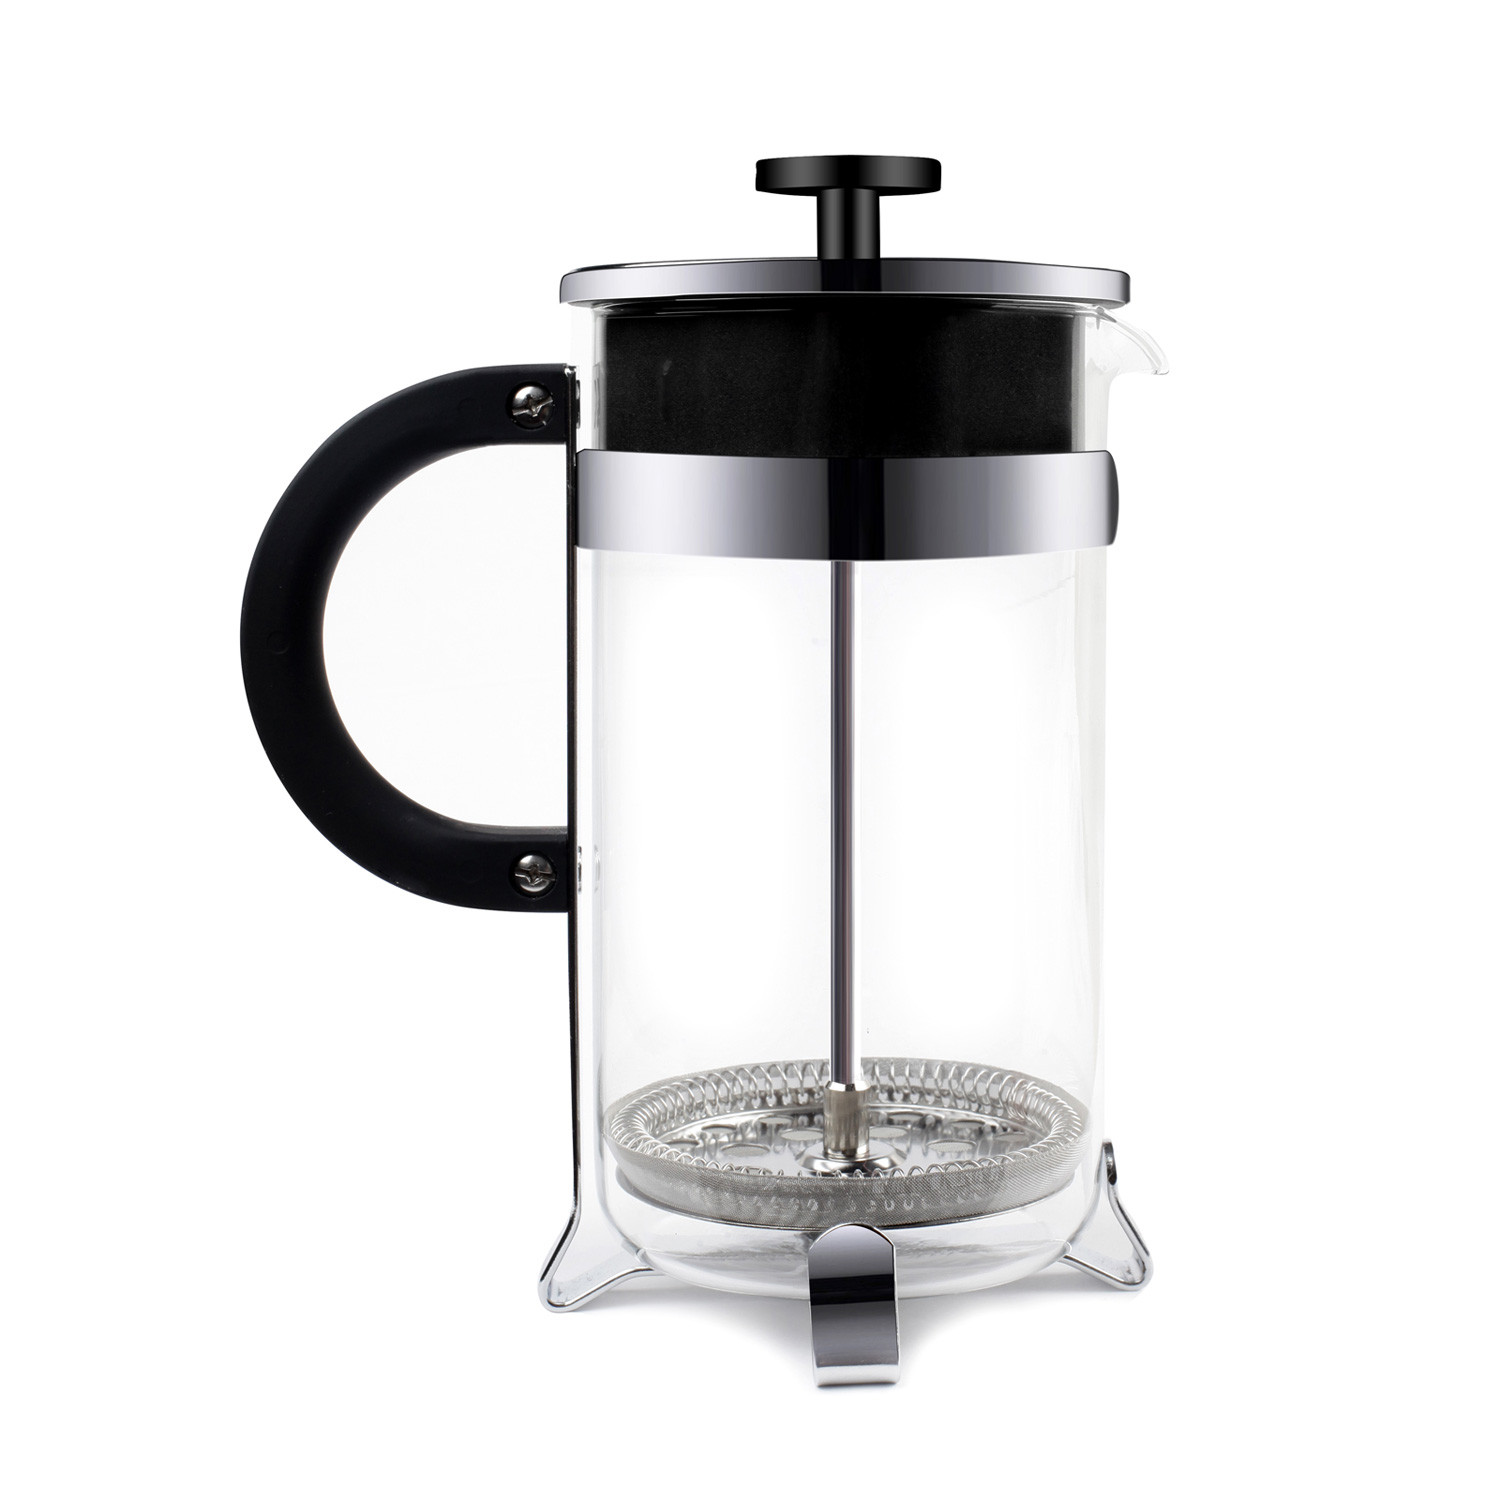 Touch Of Modern Espresso Maker ~ Amo coffee maker vialli touch of modern